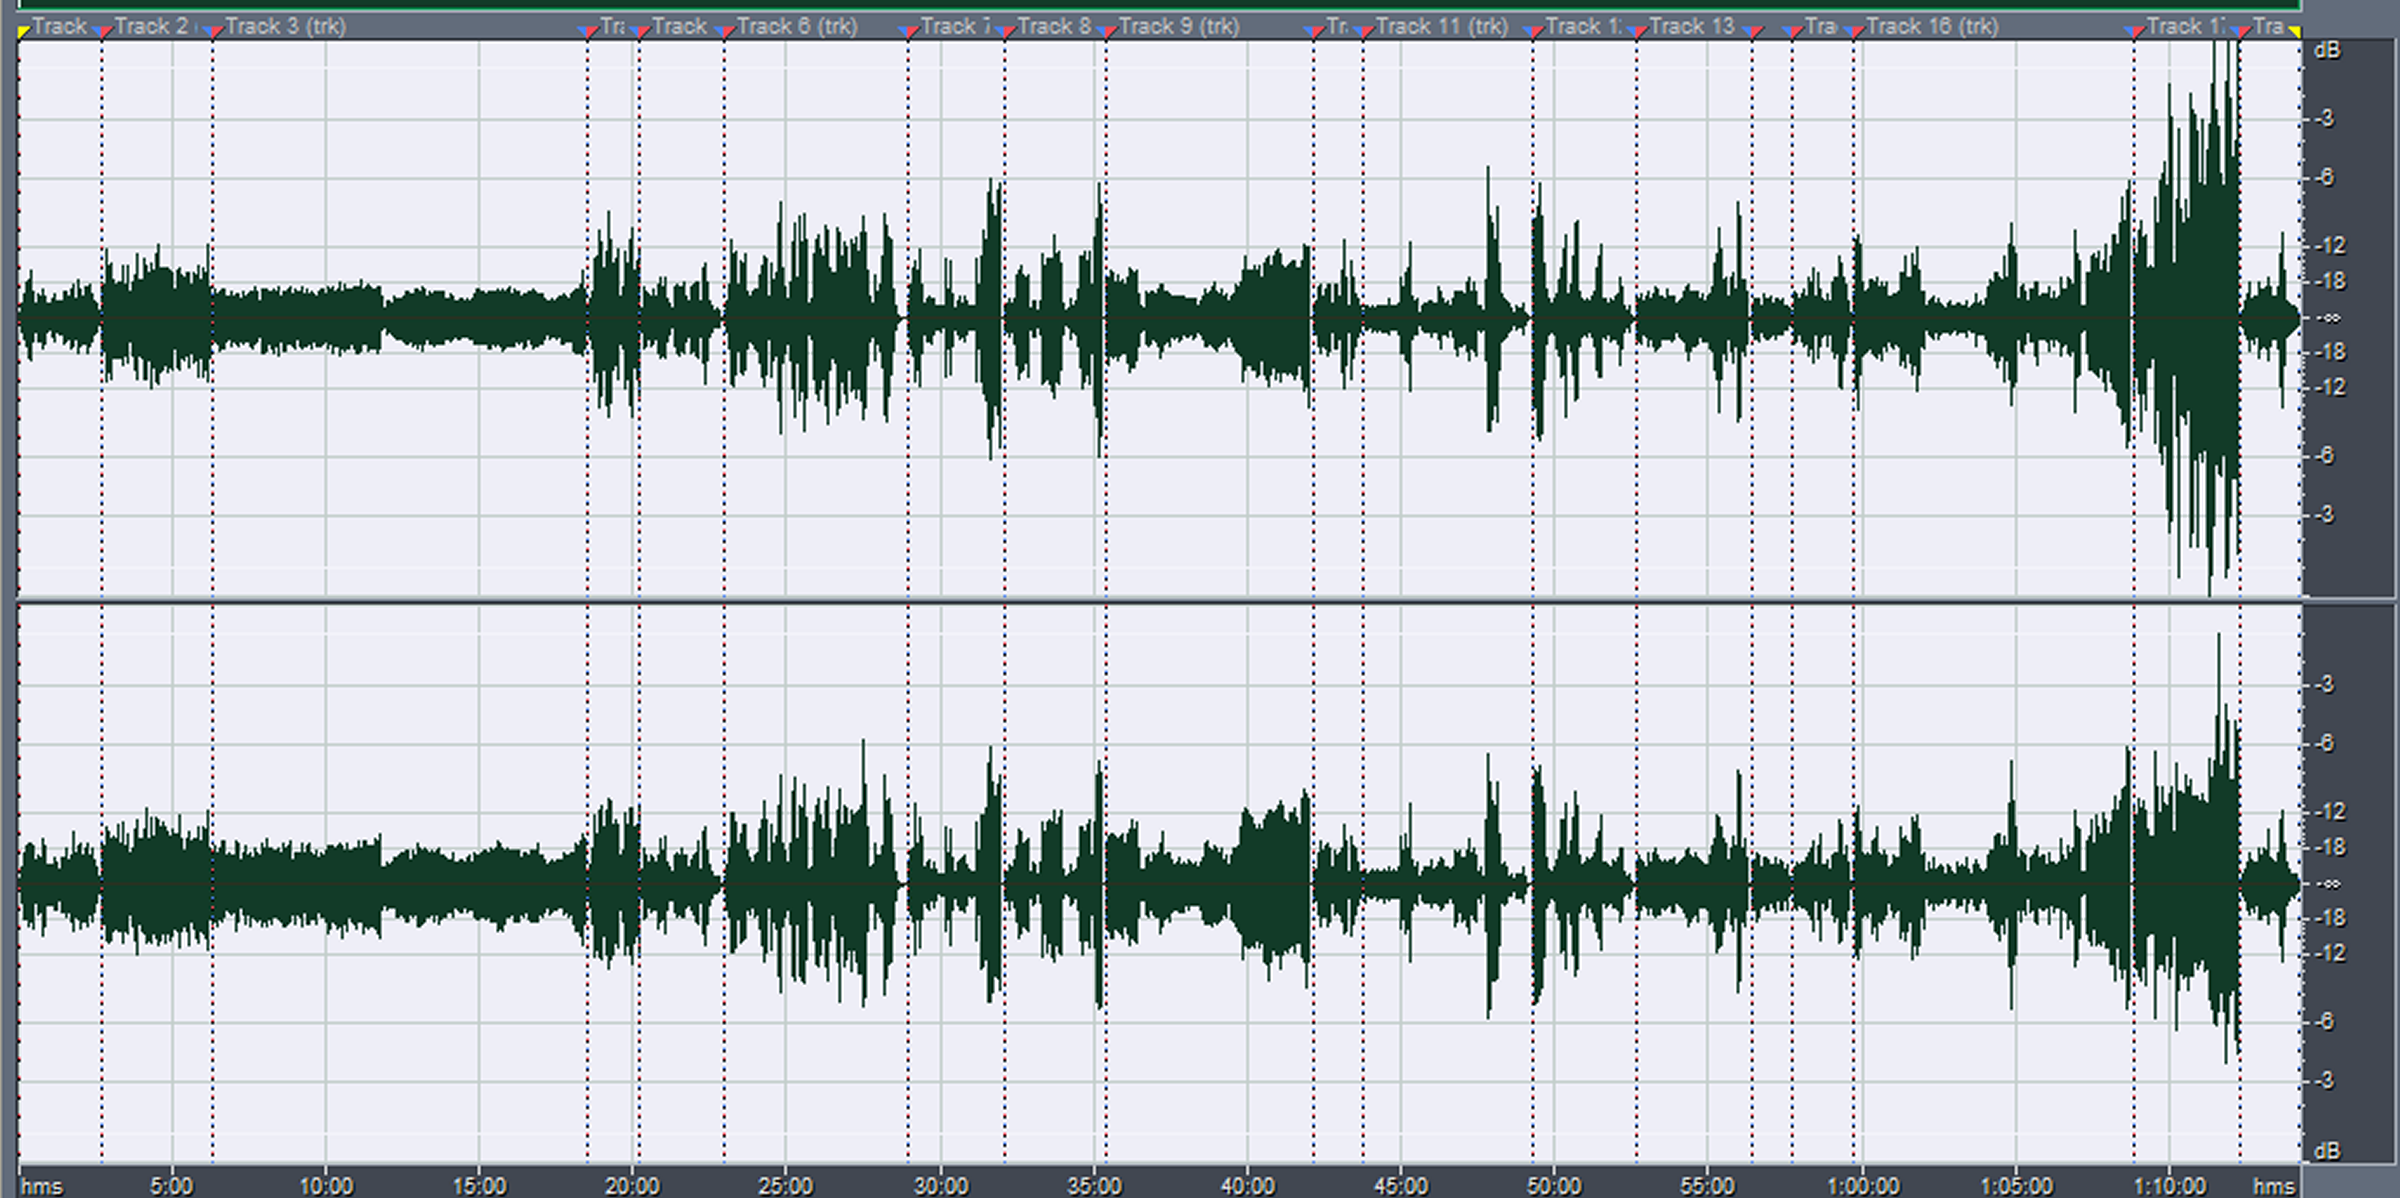 Figure 2: An uncompressed choir recording.